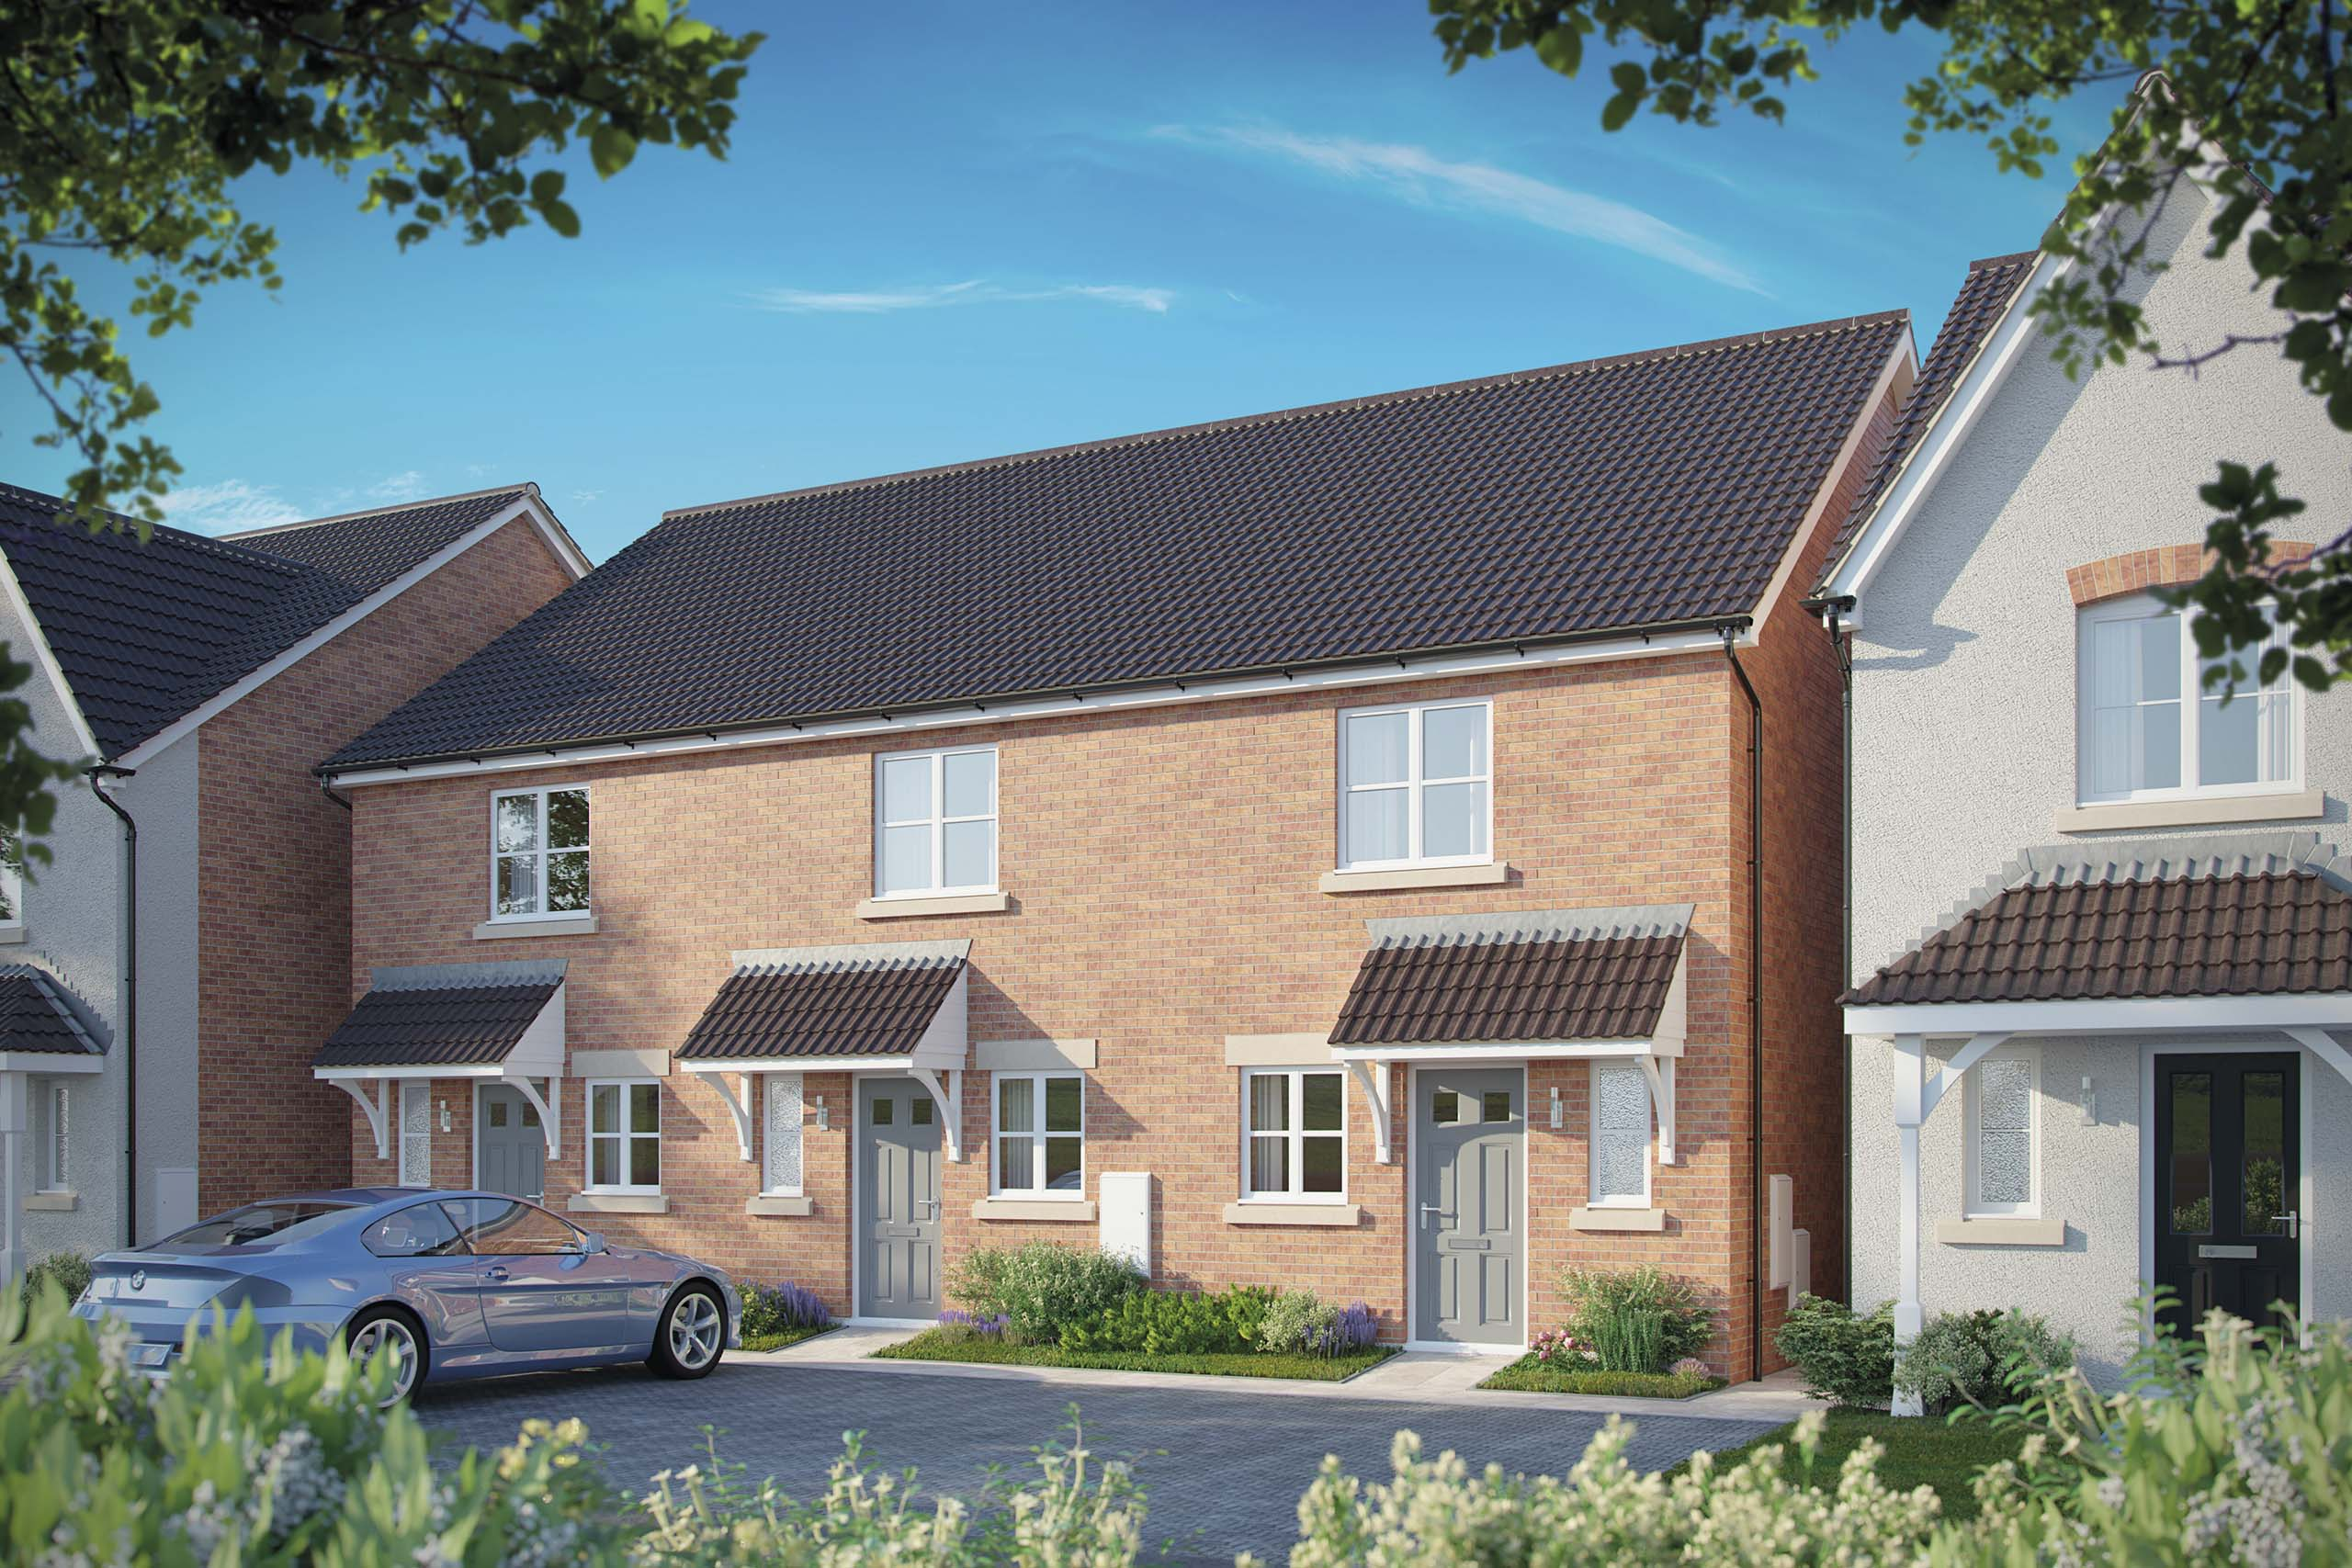 New Homes For Sale In Devizes Wiltshire From Bellway Homes